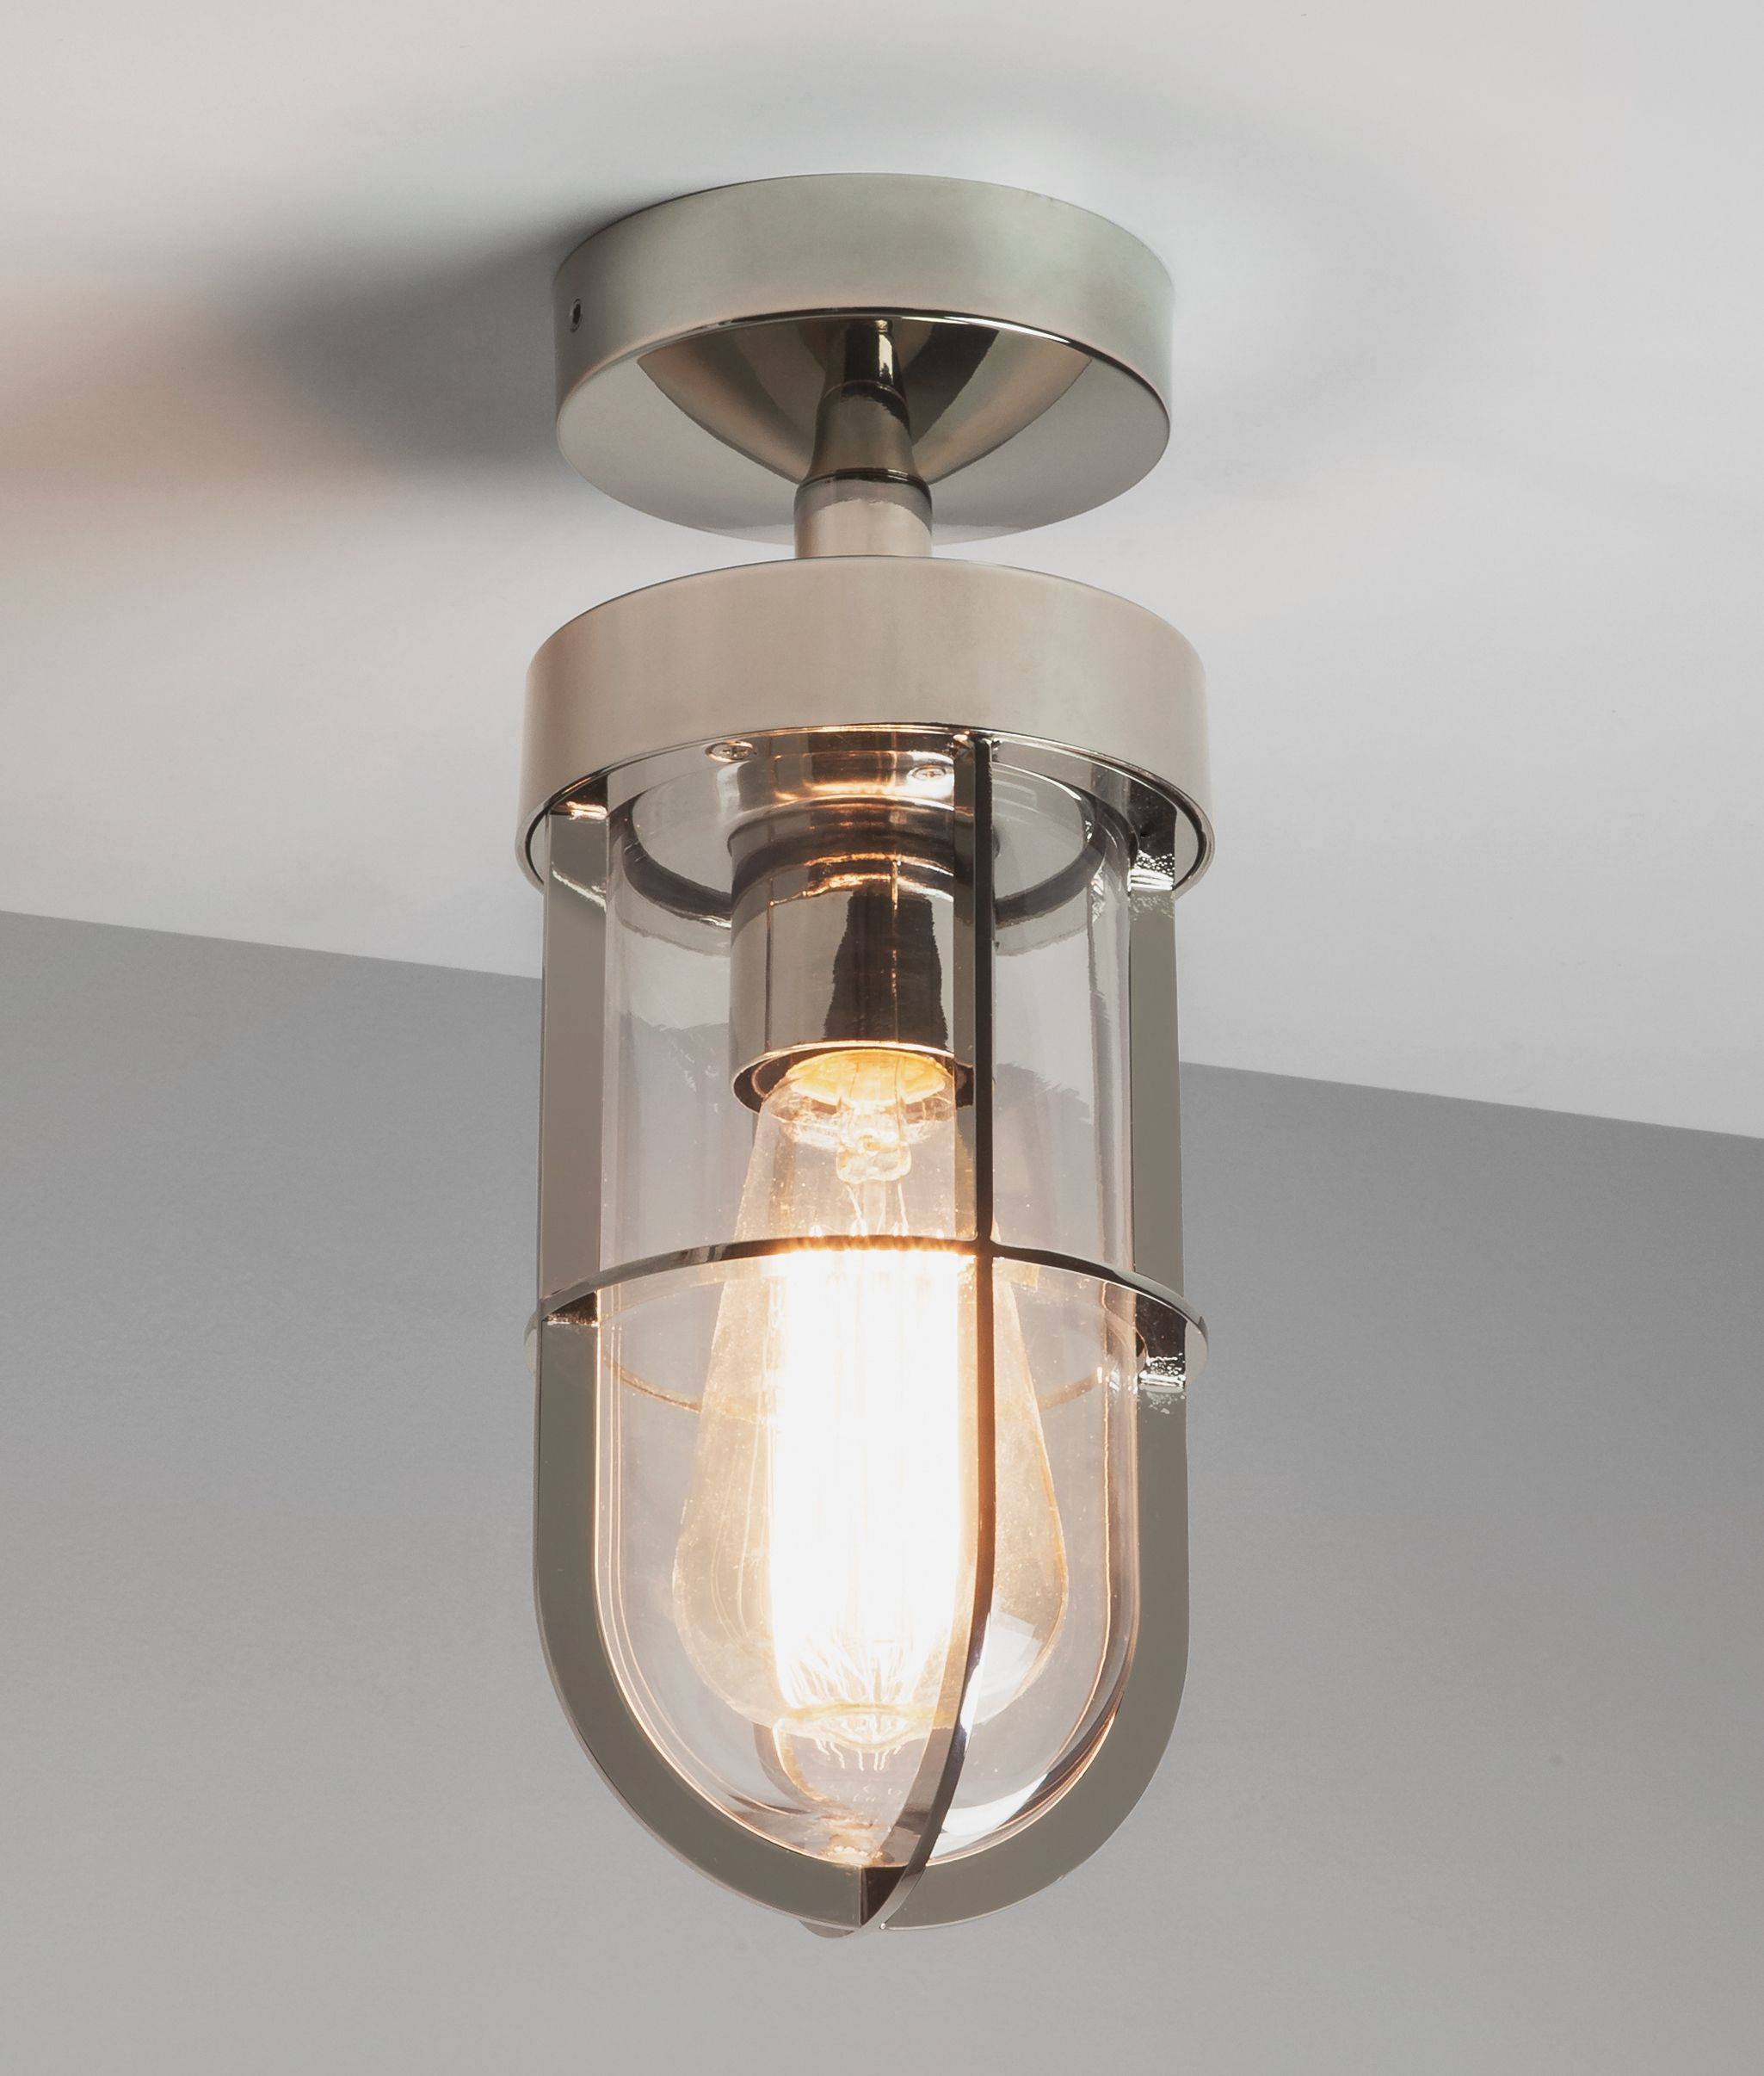 clear round lighting ceiling large lights canada fixtures lowes ceilings globe stunning light glass